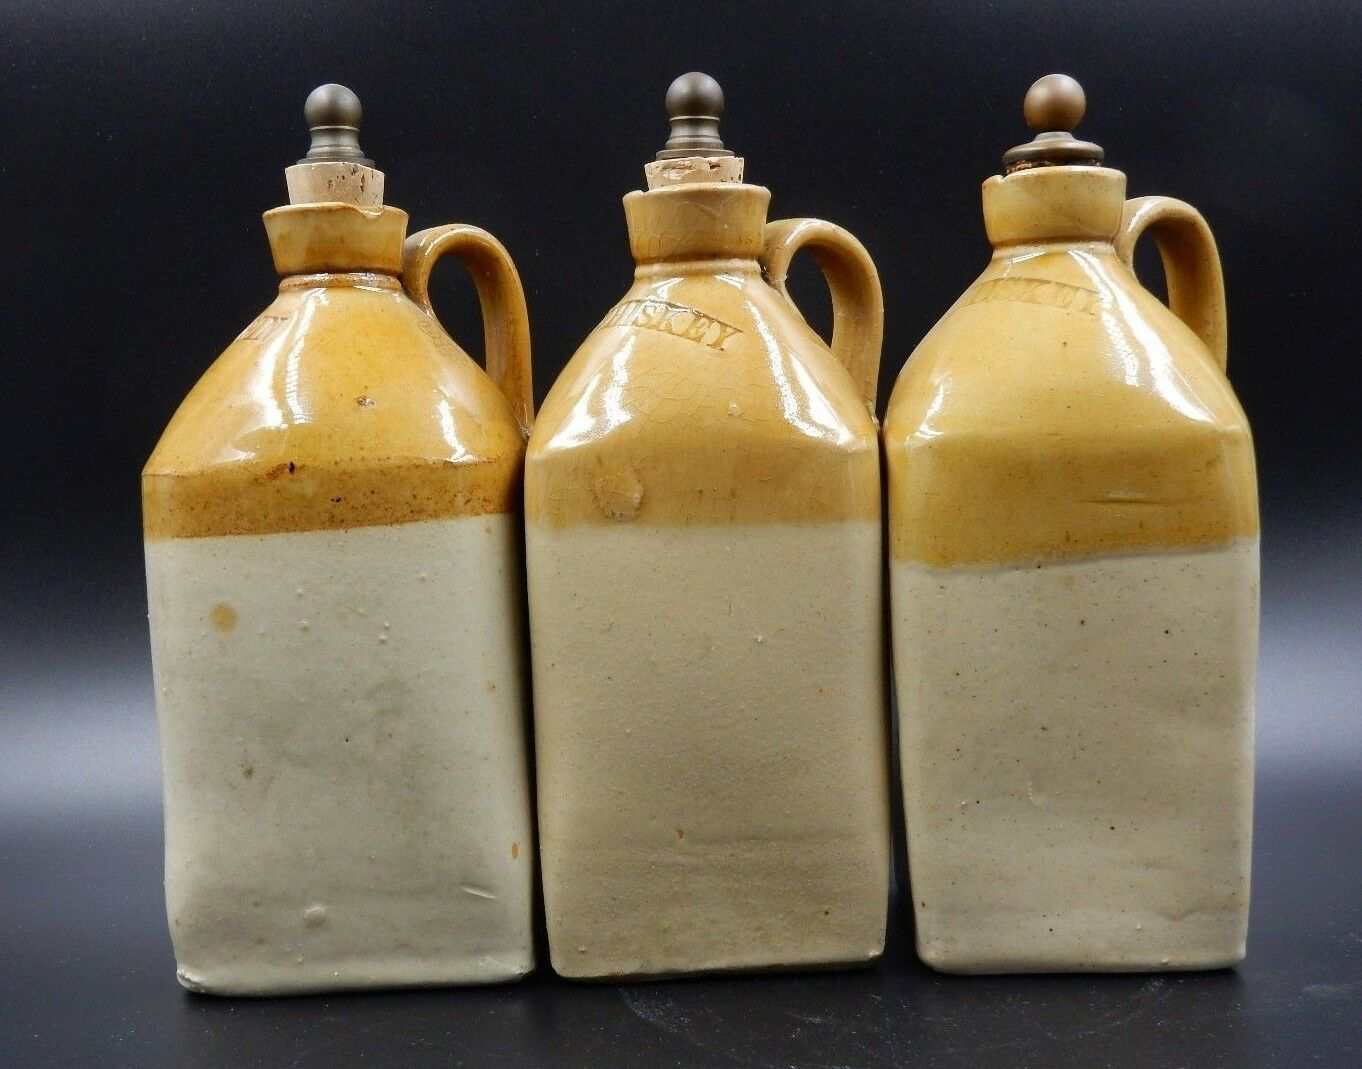 SET OF 3 HANDMADE PORCELAIN BAR SPIRIT DECANTERS WITH BRASS AND CORK STOPPERS